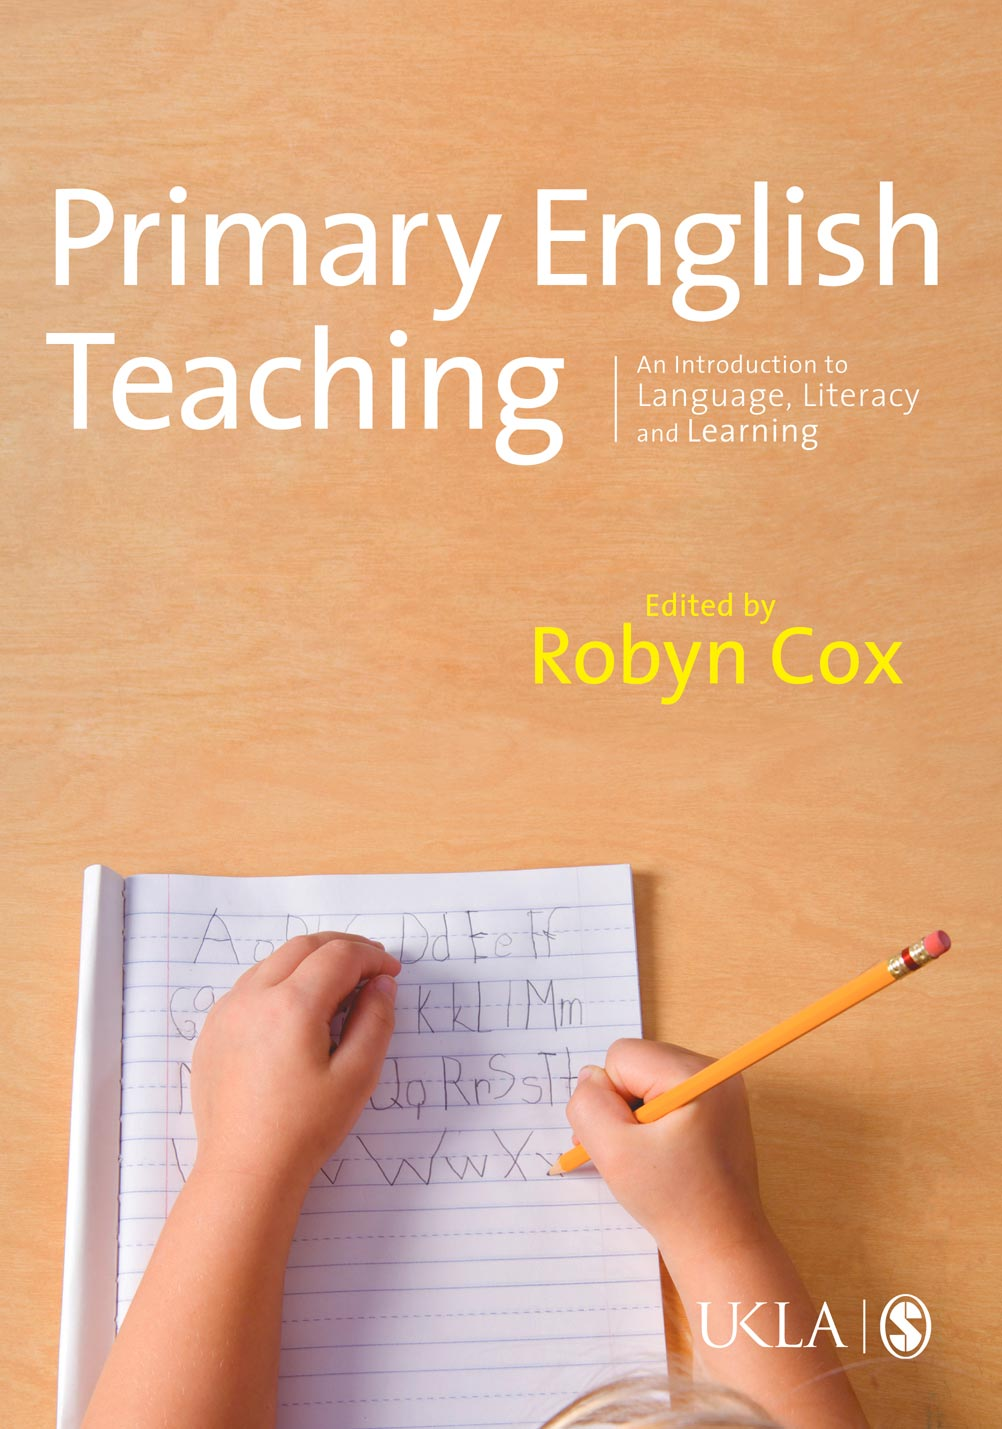 Primary English Teaching An Introduction to Language, Literacy and Learning